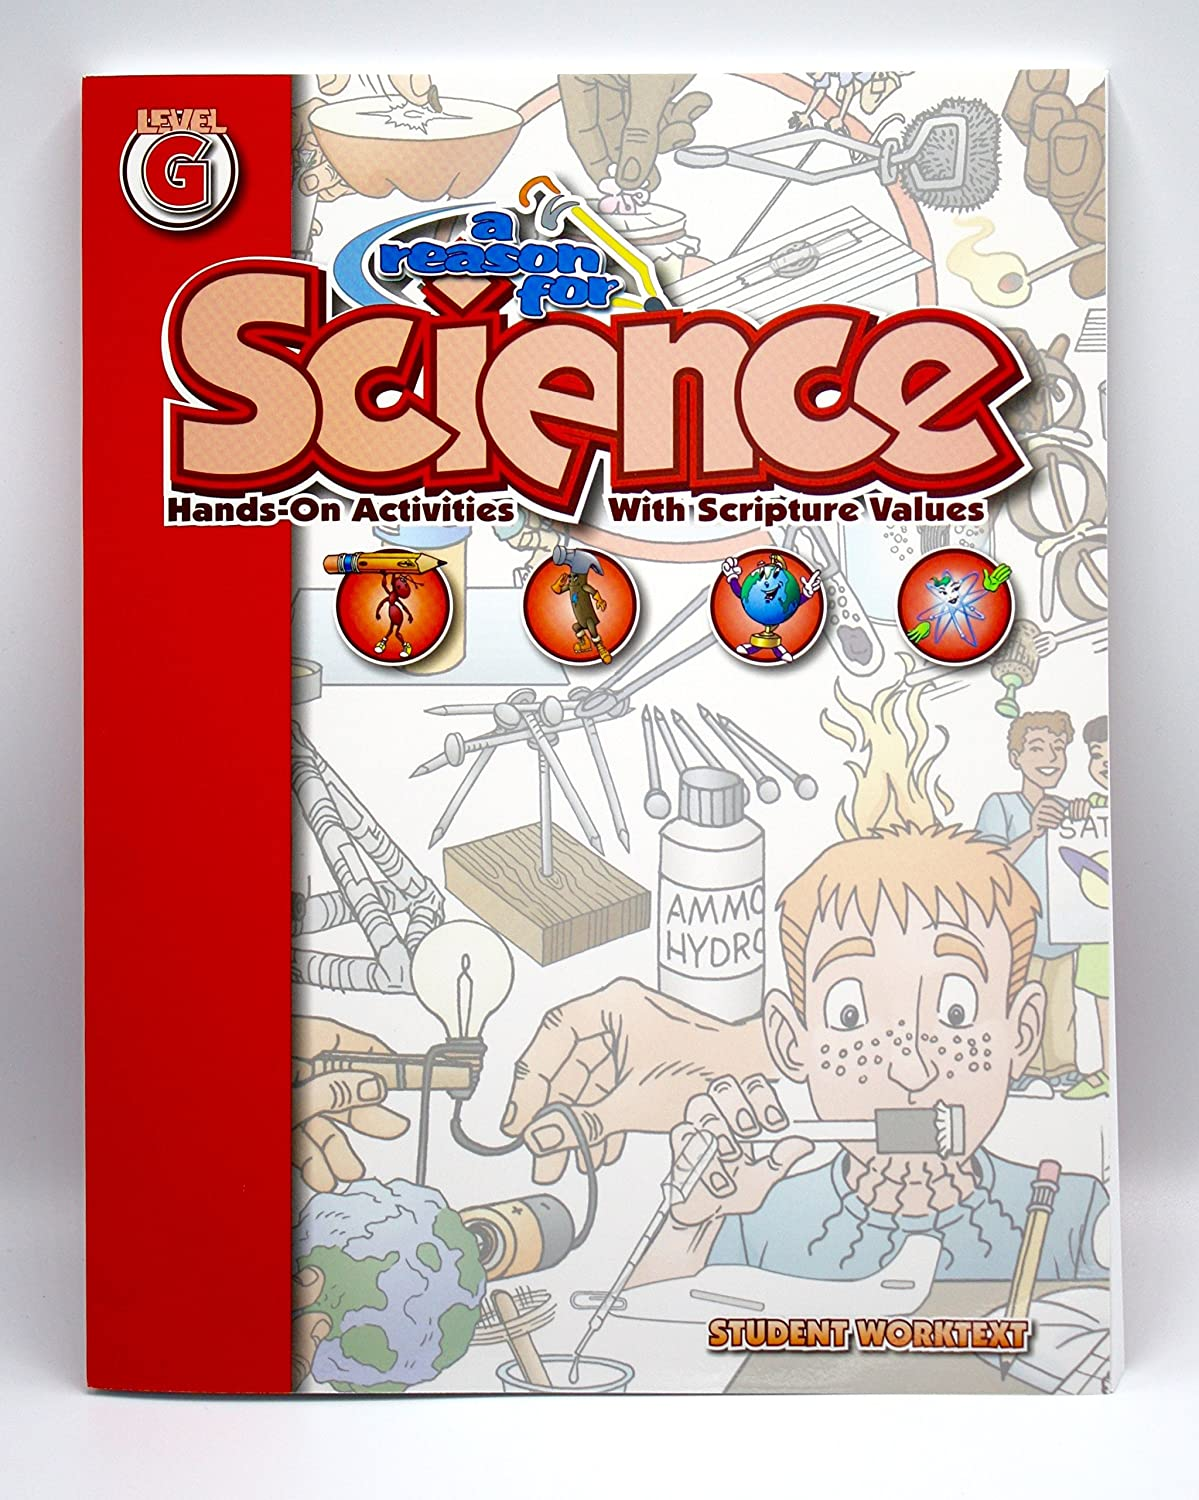 Workbooks for Third Graders Interactive Experiments /& Activities A Reason For Science Teacher Guidebook Level C 3rd Grade Daily and Weekly Lesson Plan Curriculum for Homeschool and Classroom